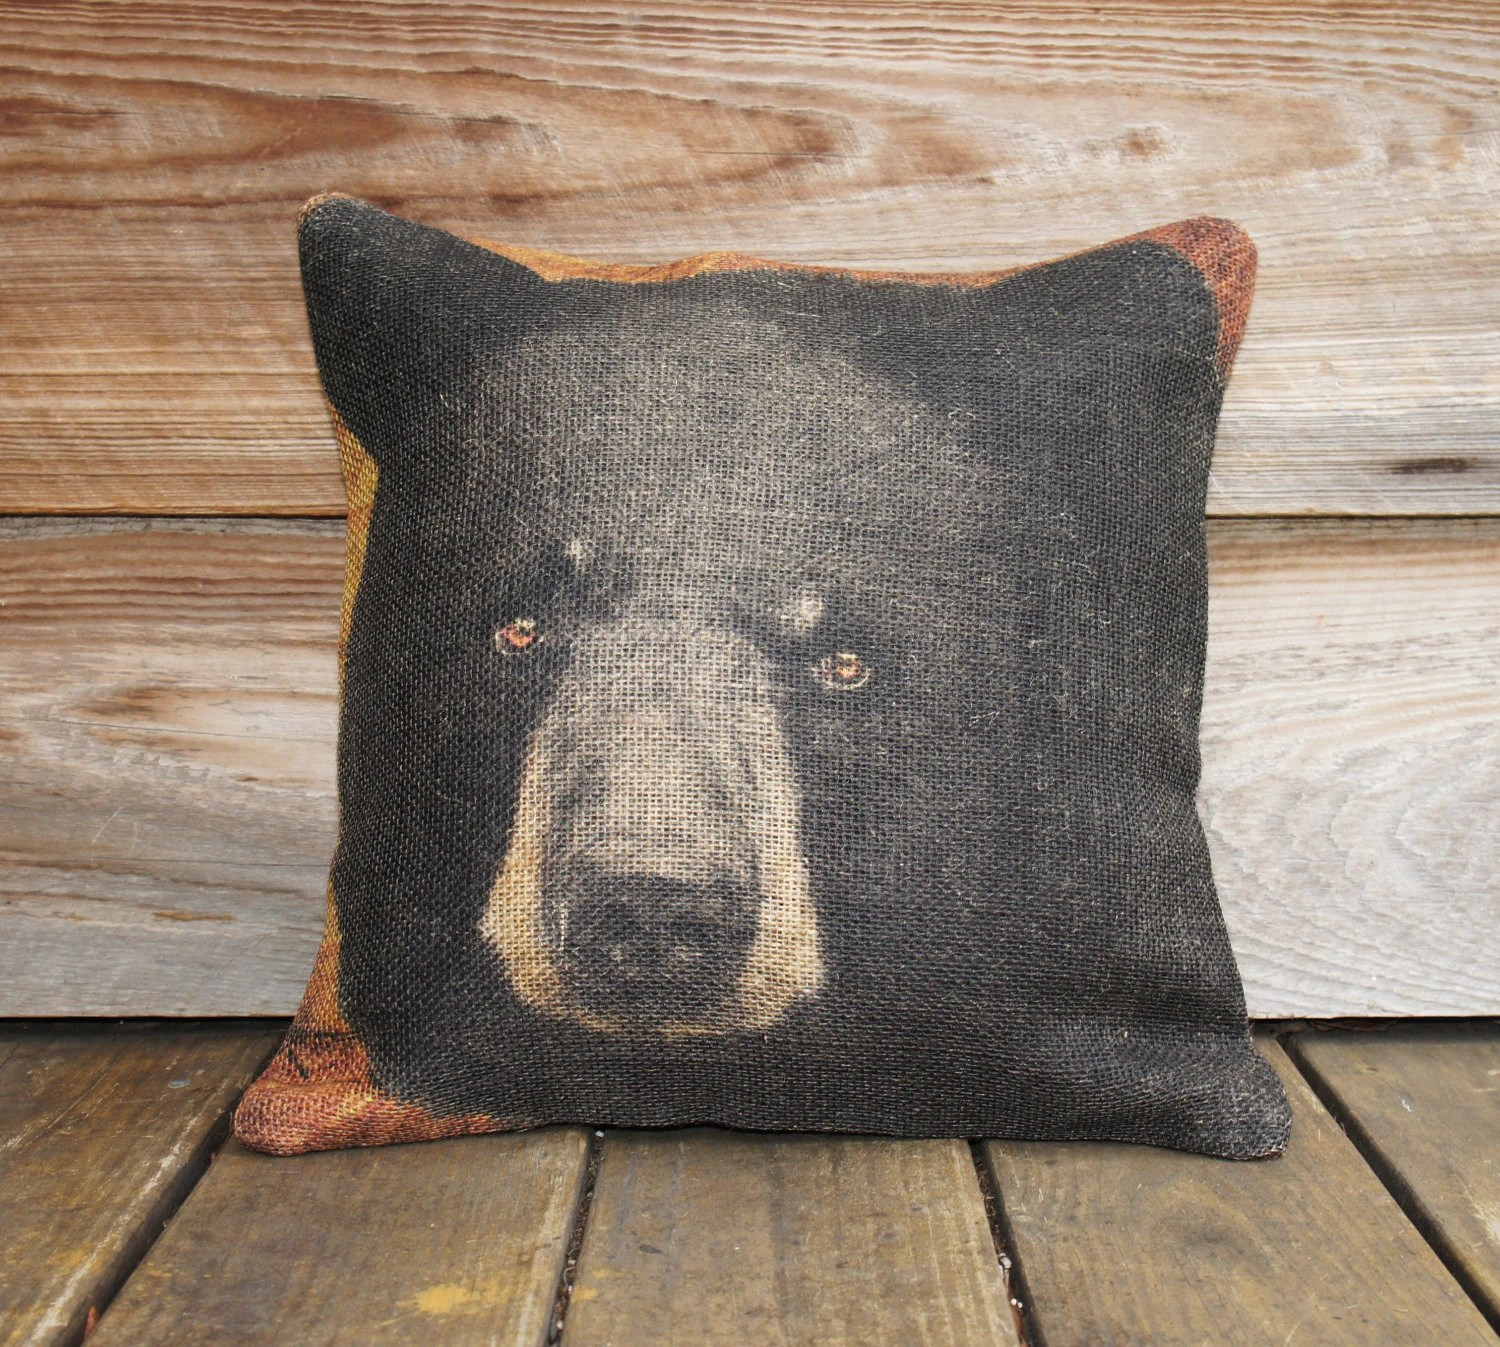 Burlap Chair Cushions Burlap Pillow Of Black Bear Throw Pillow Cushion Rustic